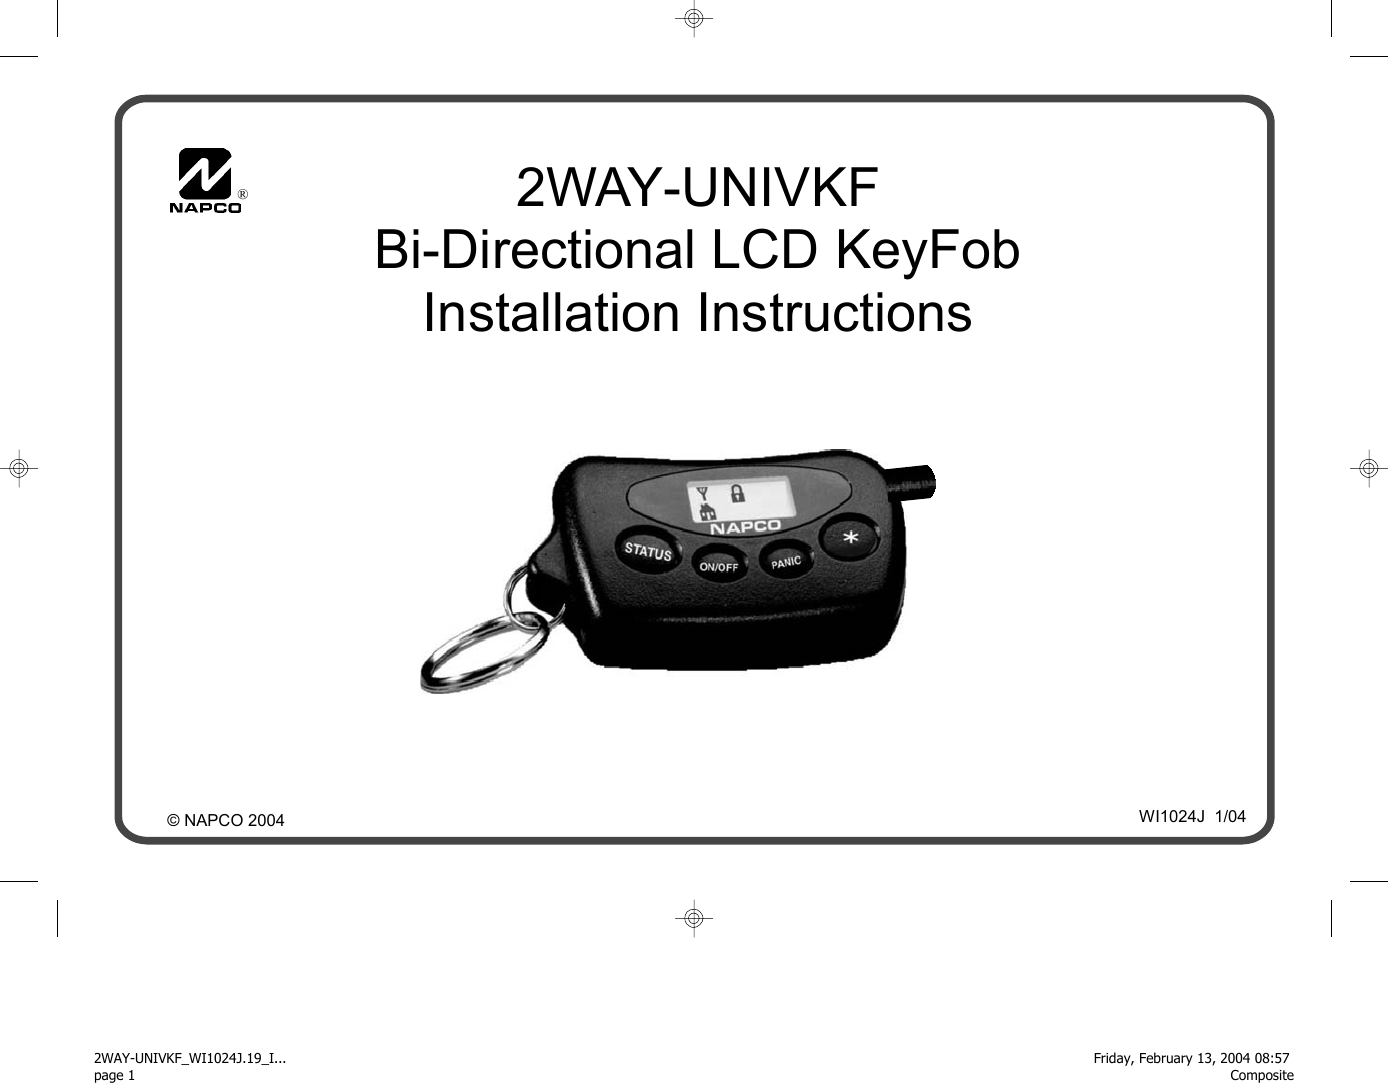 Napco Security Systems 2wayrcvr Universal 2 Way Keyfob Receiver User Gemini Alarm Wiring Diagram Manual 2way Univkf Wi1024j 19 Inst Pdf Pub